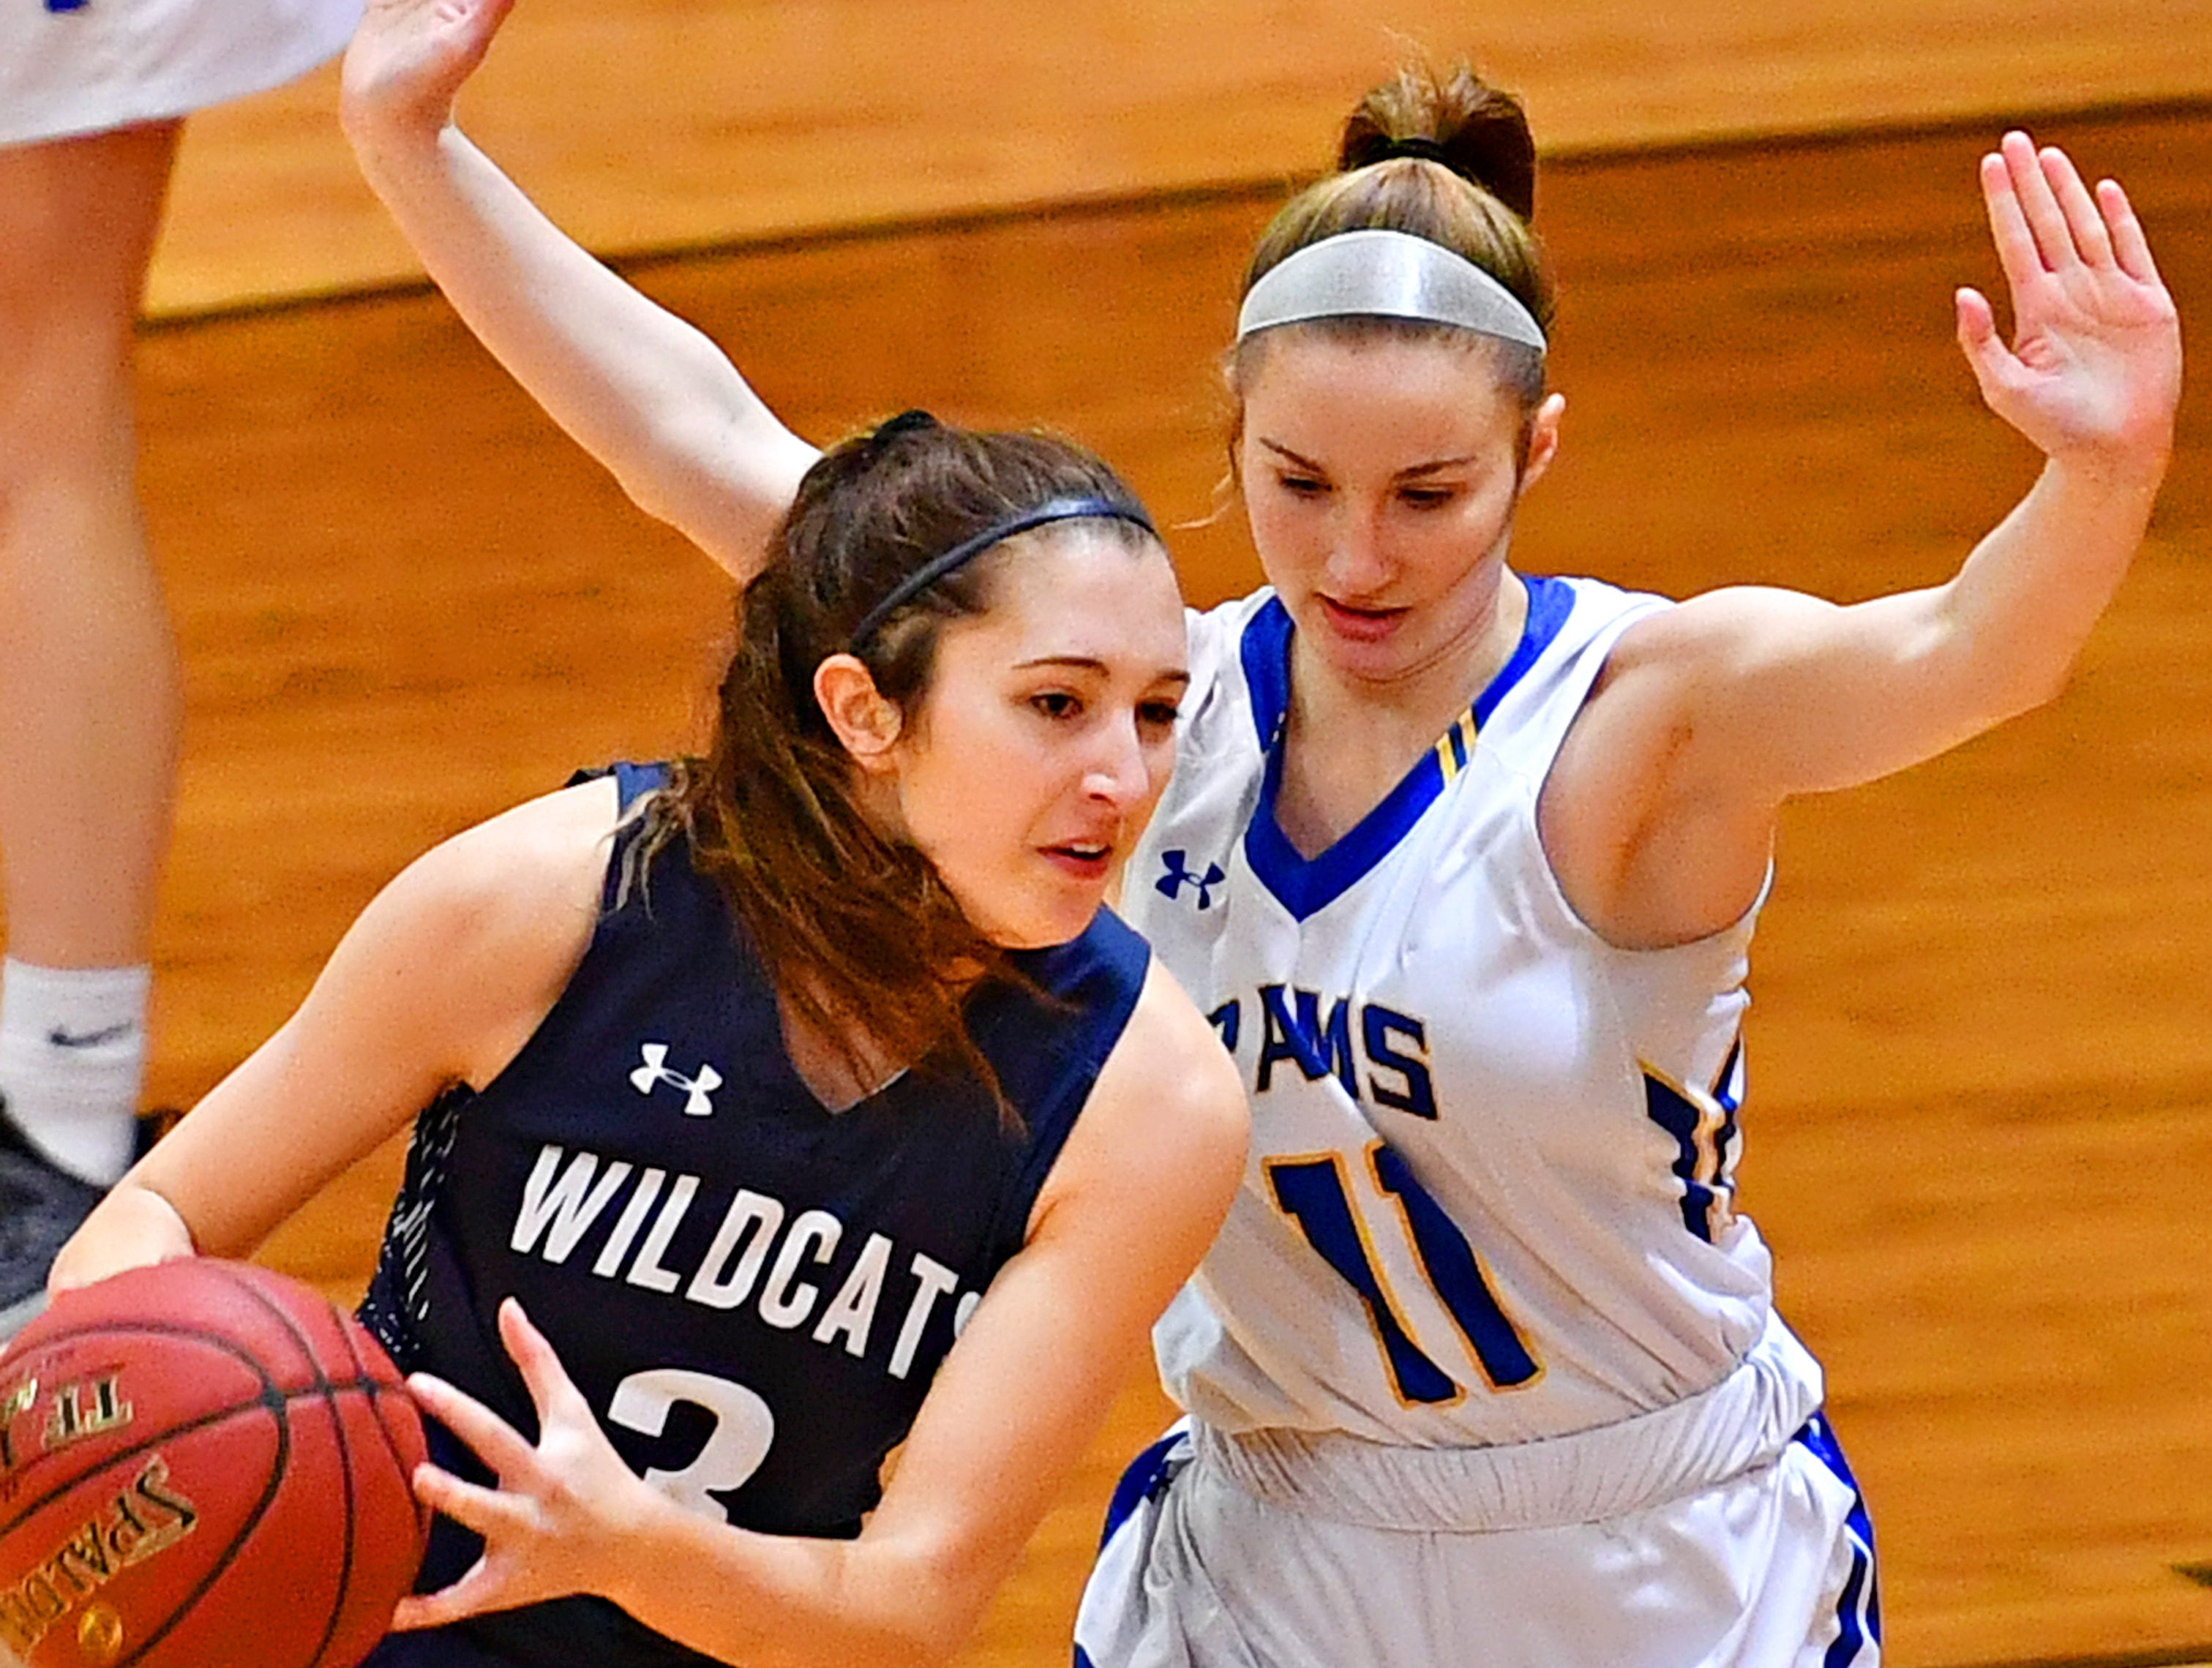 Mifflinburg's Riley Griffith, left, works to get around Kennard-Dale's Megan Thomas during PIAA Class 4-A girl's basketball second round at Milton Hershey High School in Hershey, Wednesday, March 13, 2019. Mifflinburg would win the game 51-45. Dawn J. Sagert photo